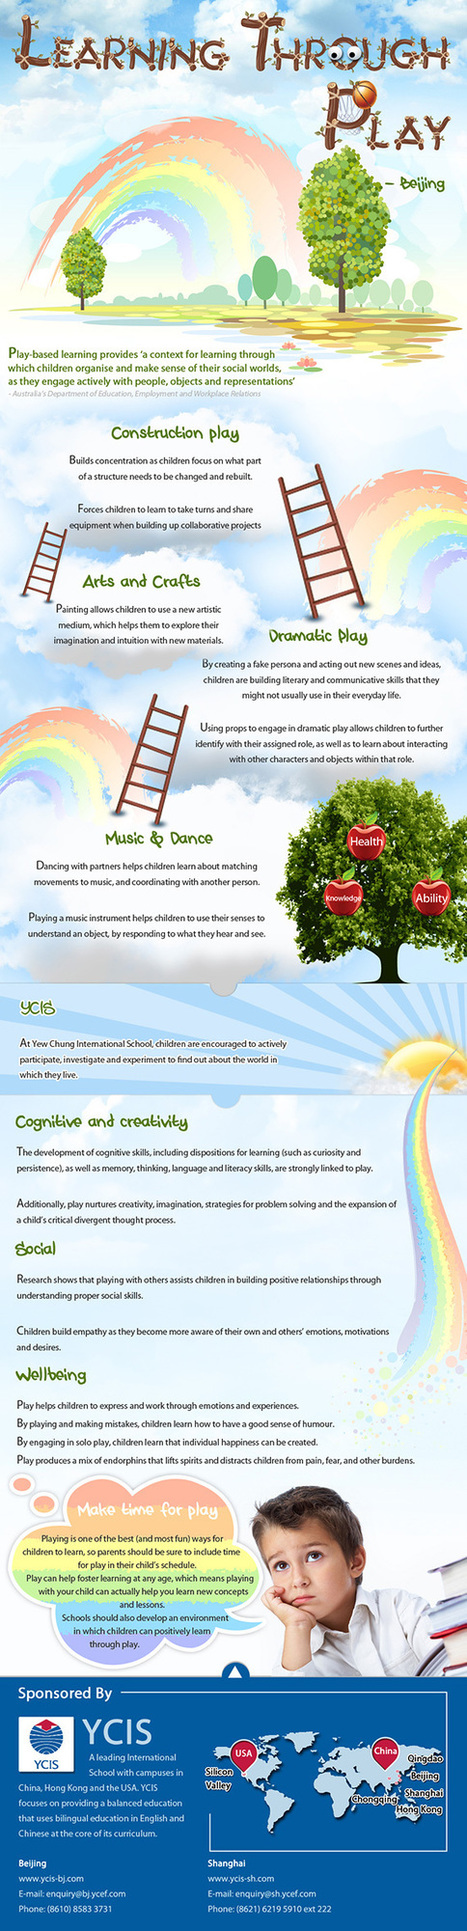 Learning Through Play Infographic | KB...Konnected's  Kaleidoscope of  Wonderful Websites! | Scoop.it